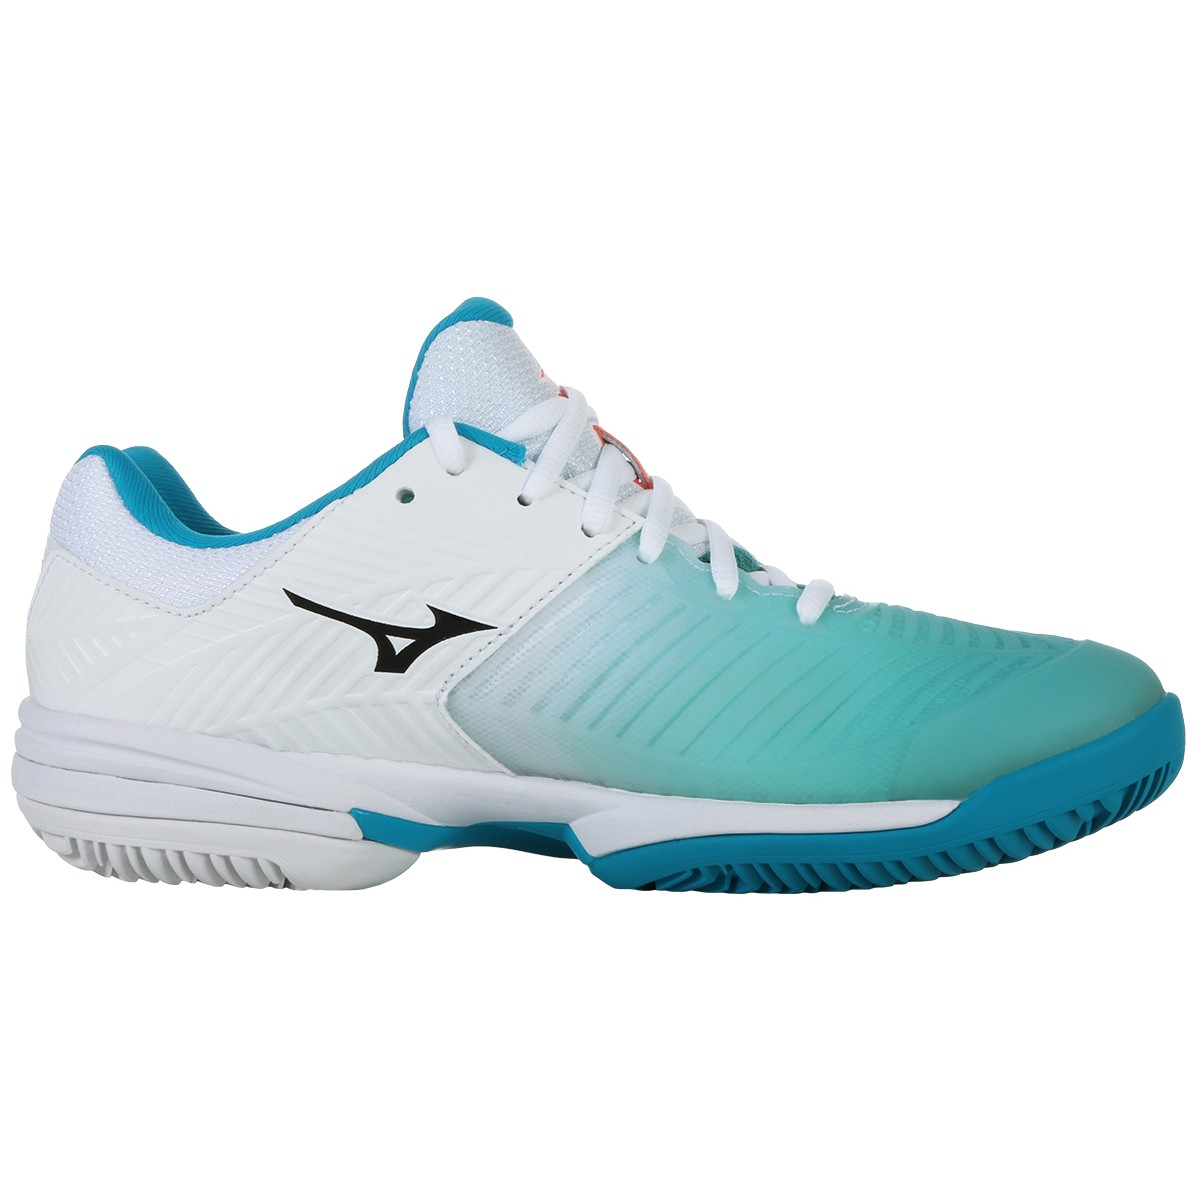 premium selection 27f4e 356eb WOMEN S MIZUNO WAVE EXCEED TOUR 3 CLAY COURT SHOES   Tennispro